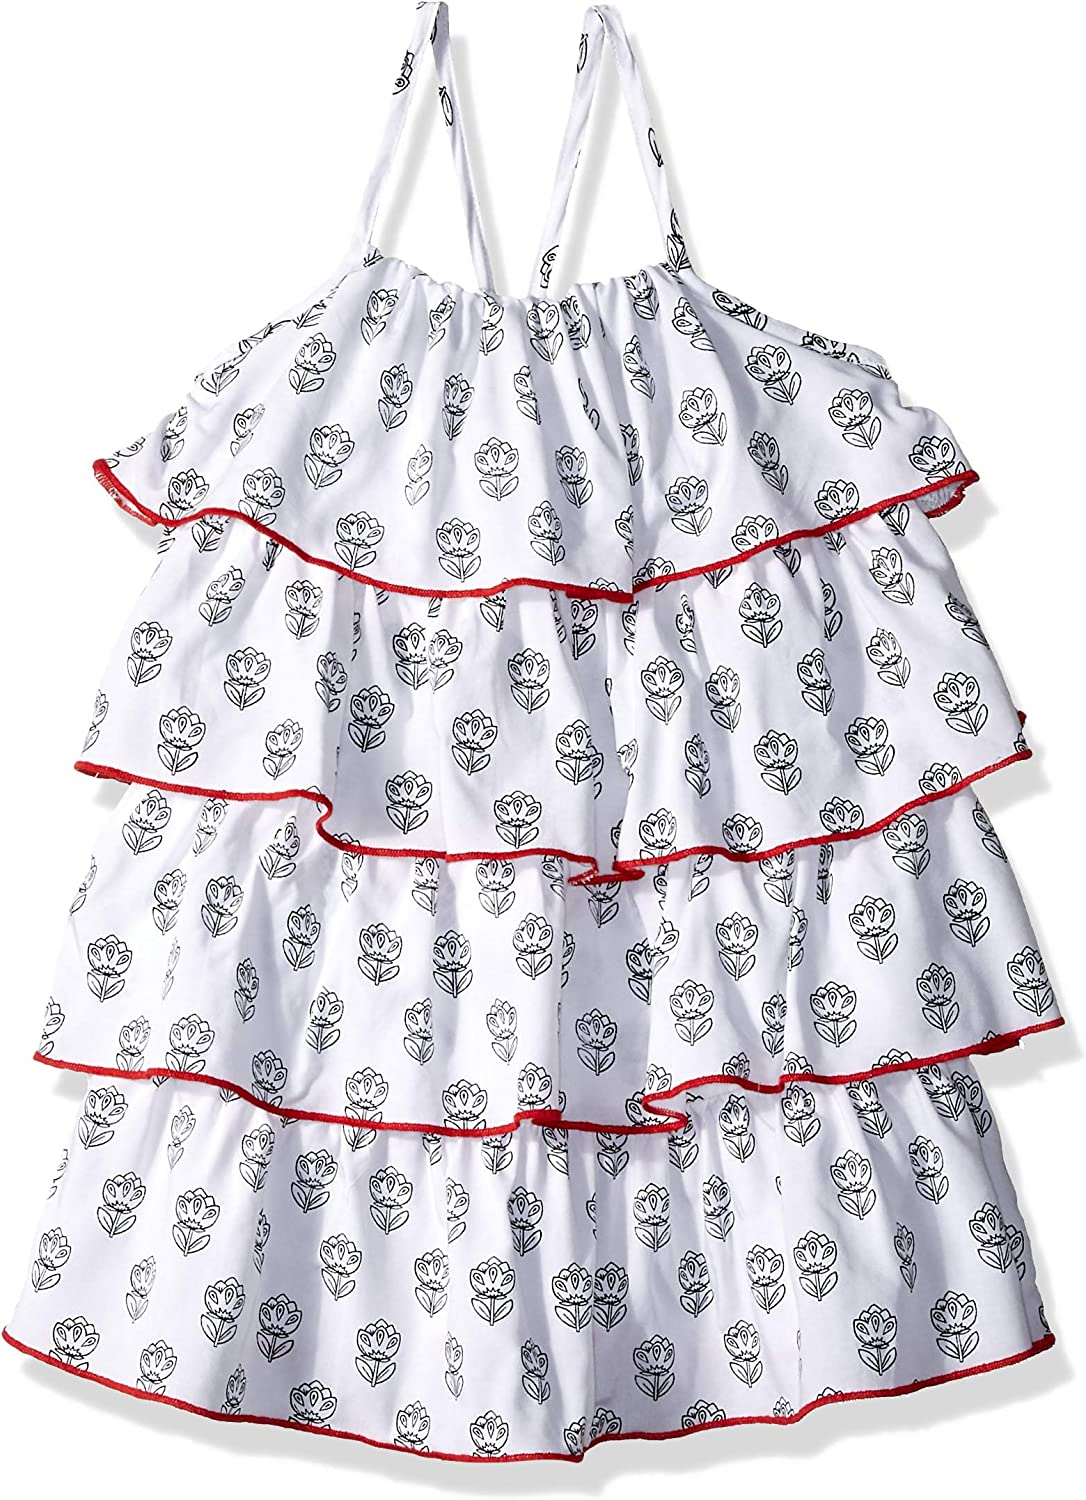 Hatley Year-end annual account Sales Girls' Layered Dress